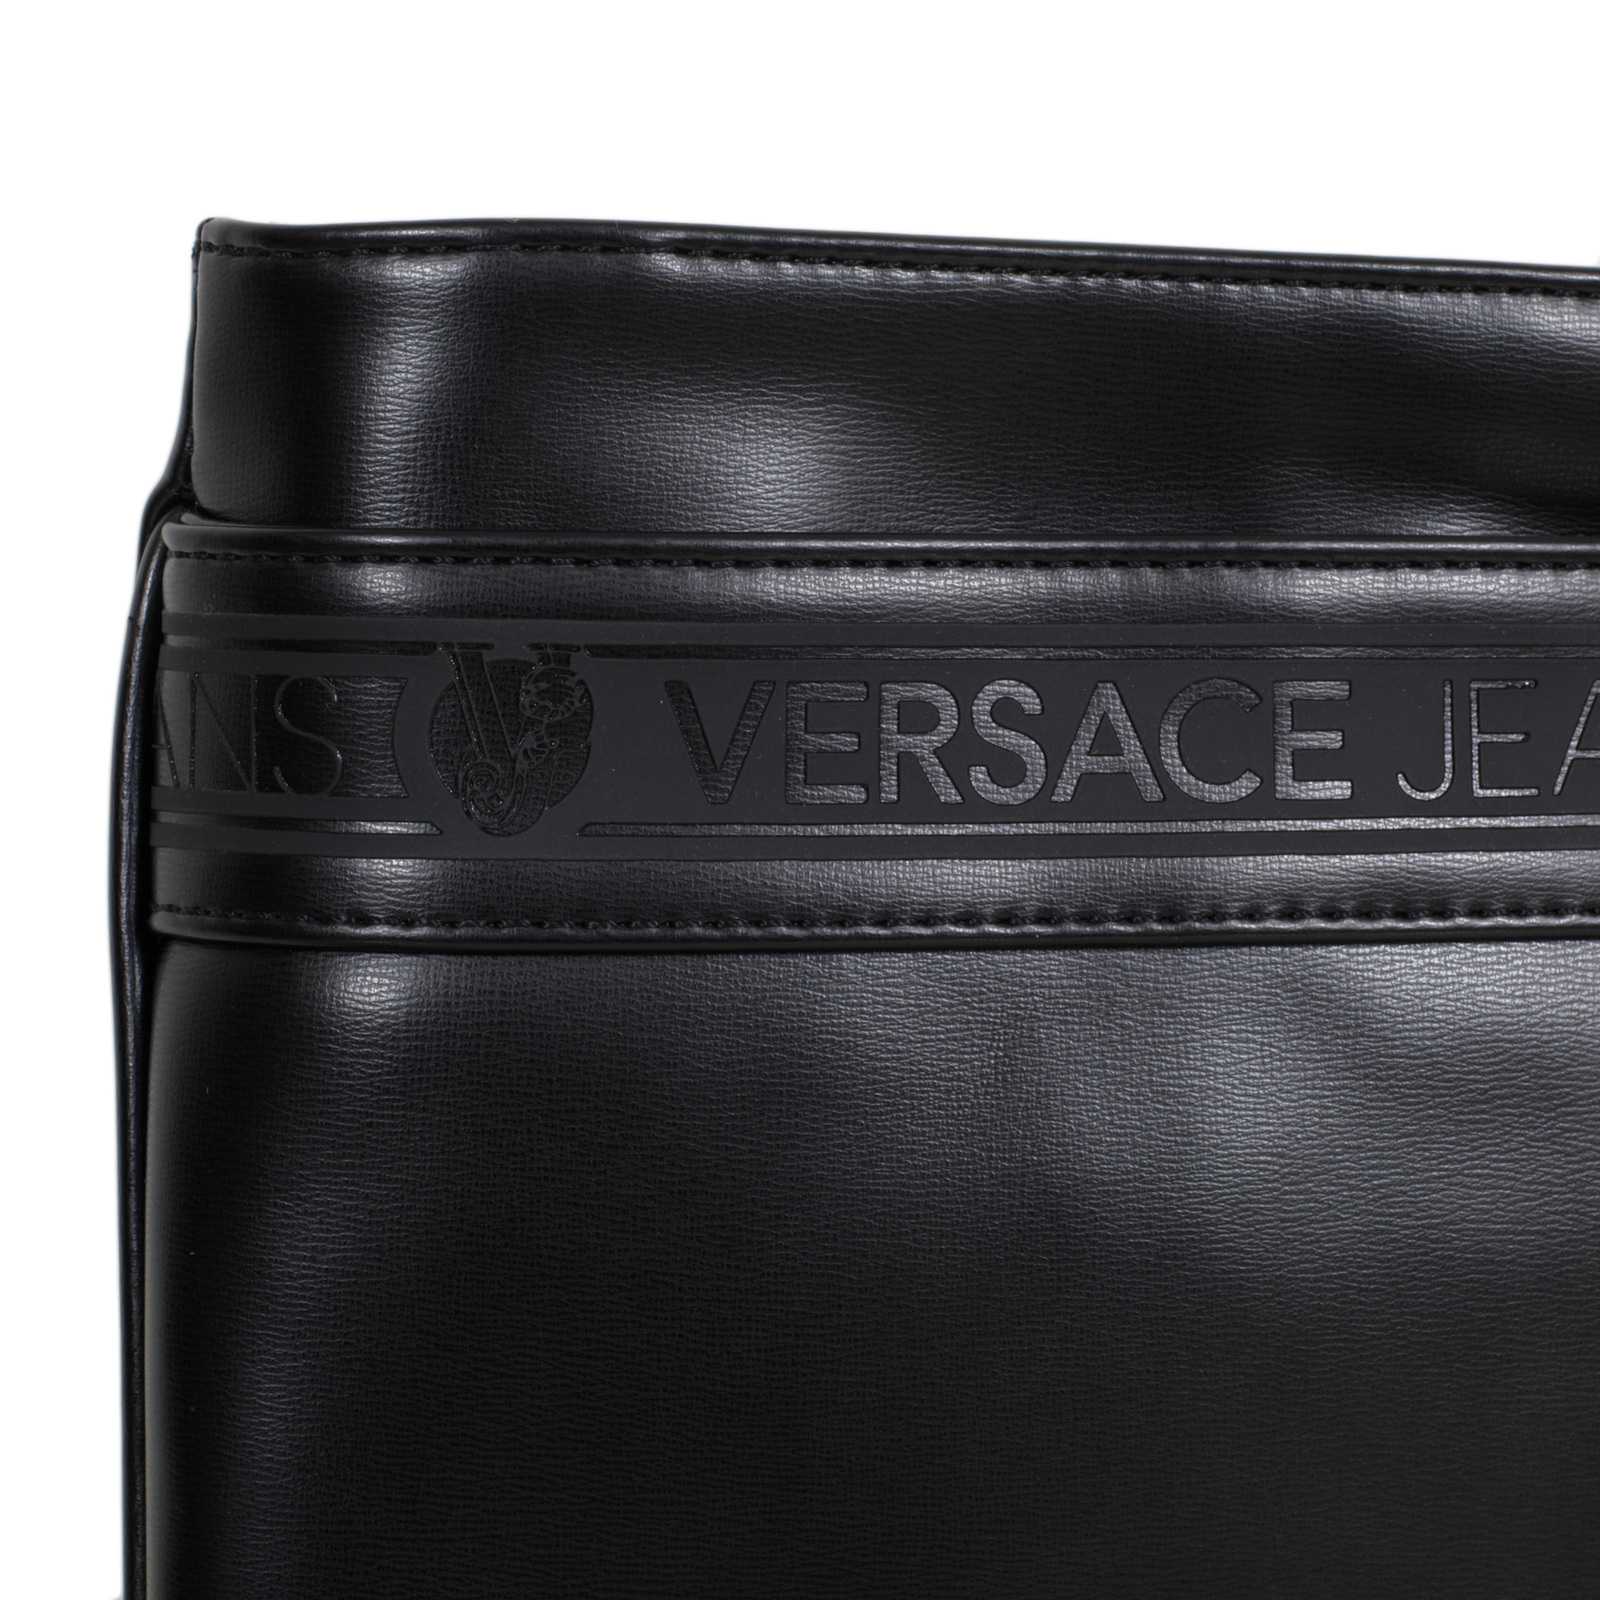 eca3bb2255df Versace Jeans Nastro Logato E1YOBB32 Top Zip Closure Black Bag with Logo  Front Panel and Pocket